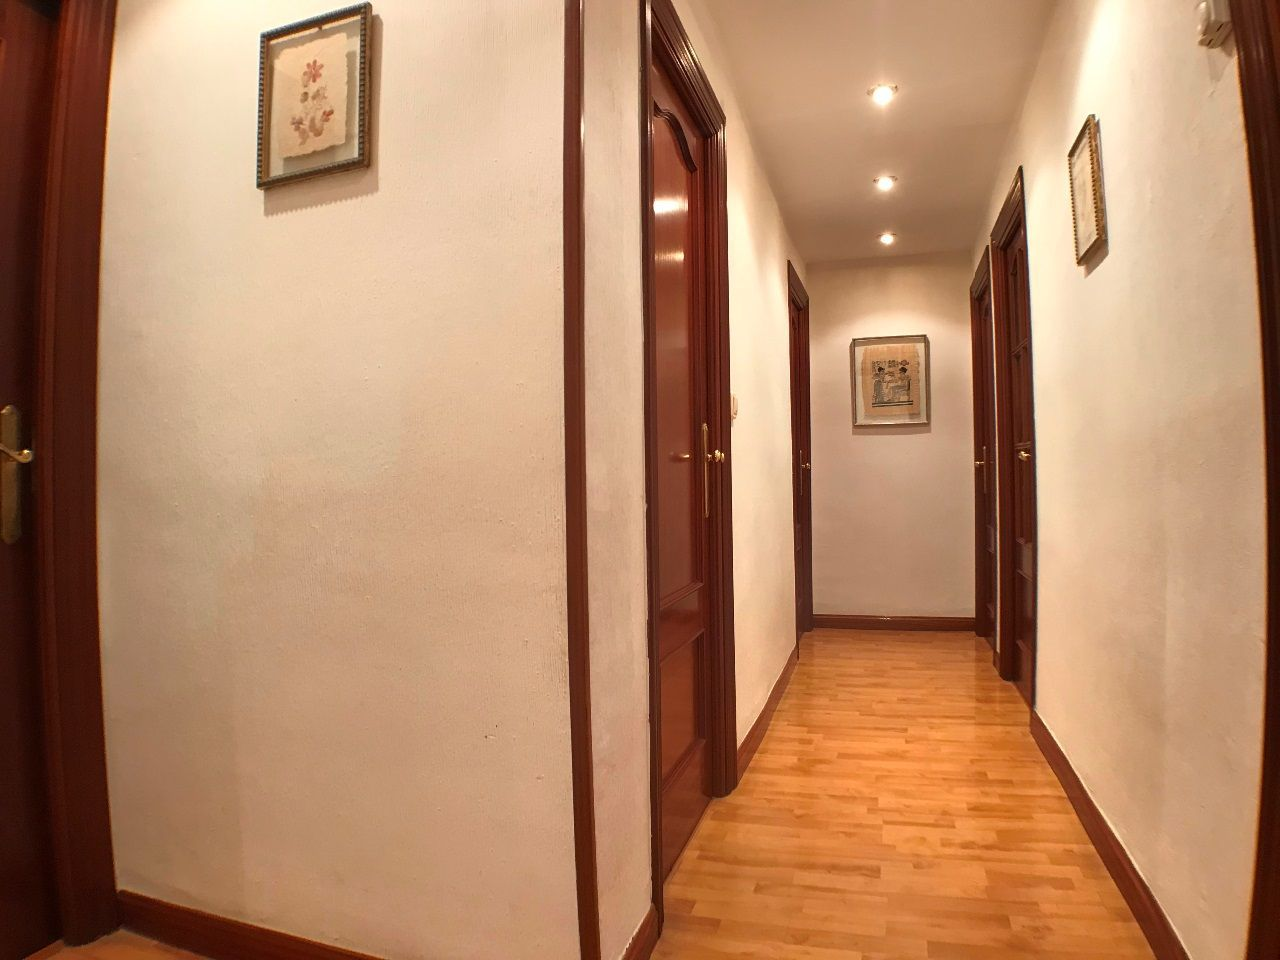 https://media.mobiliagestion.es/Portals/inmoatrio/Images/6266/3665014.jpg